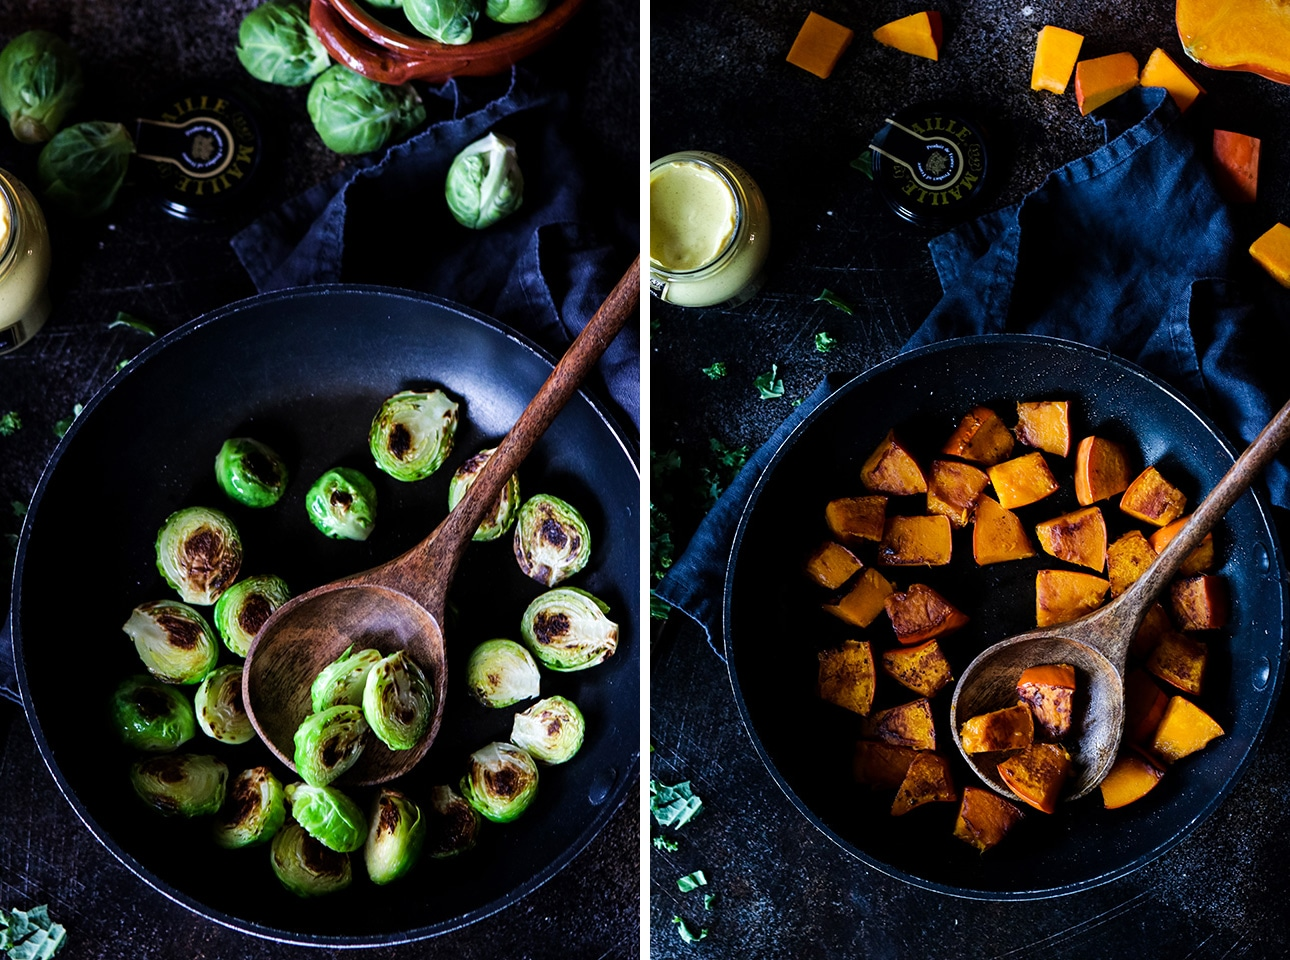 Brussels Sprouts And Diced Pumpkin in a Skillet